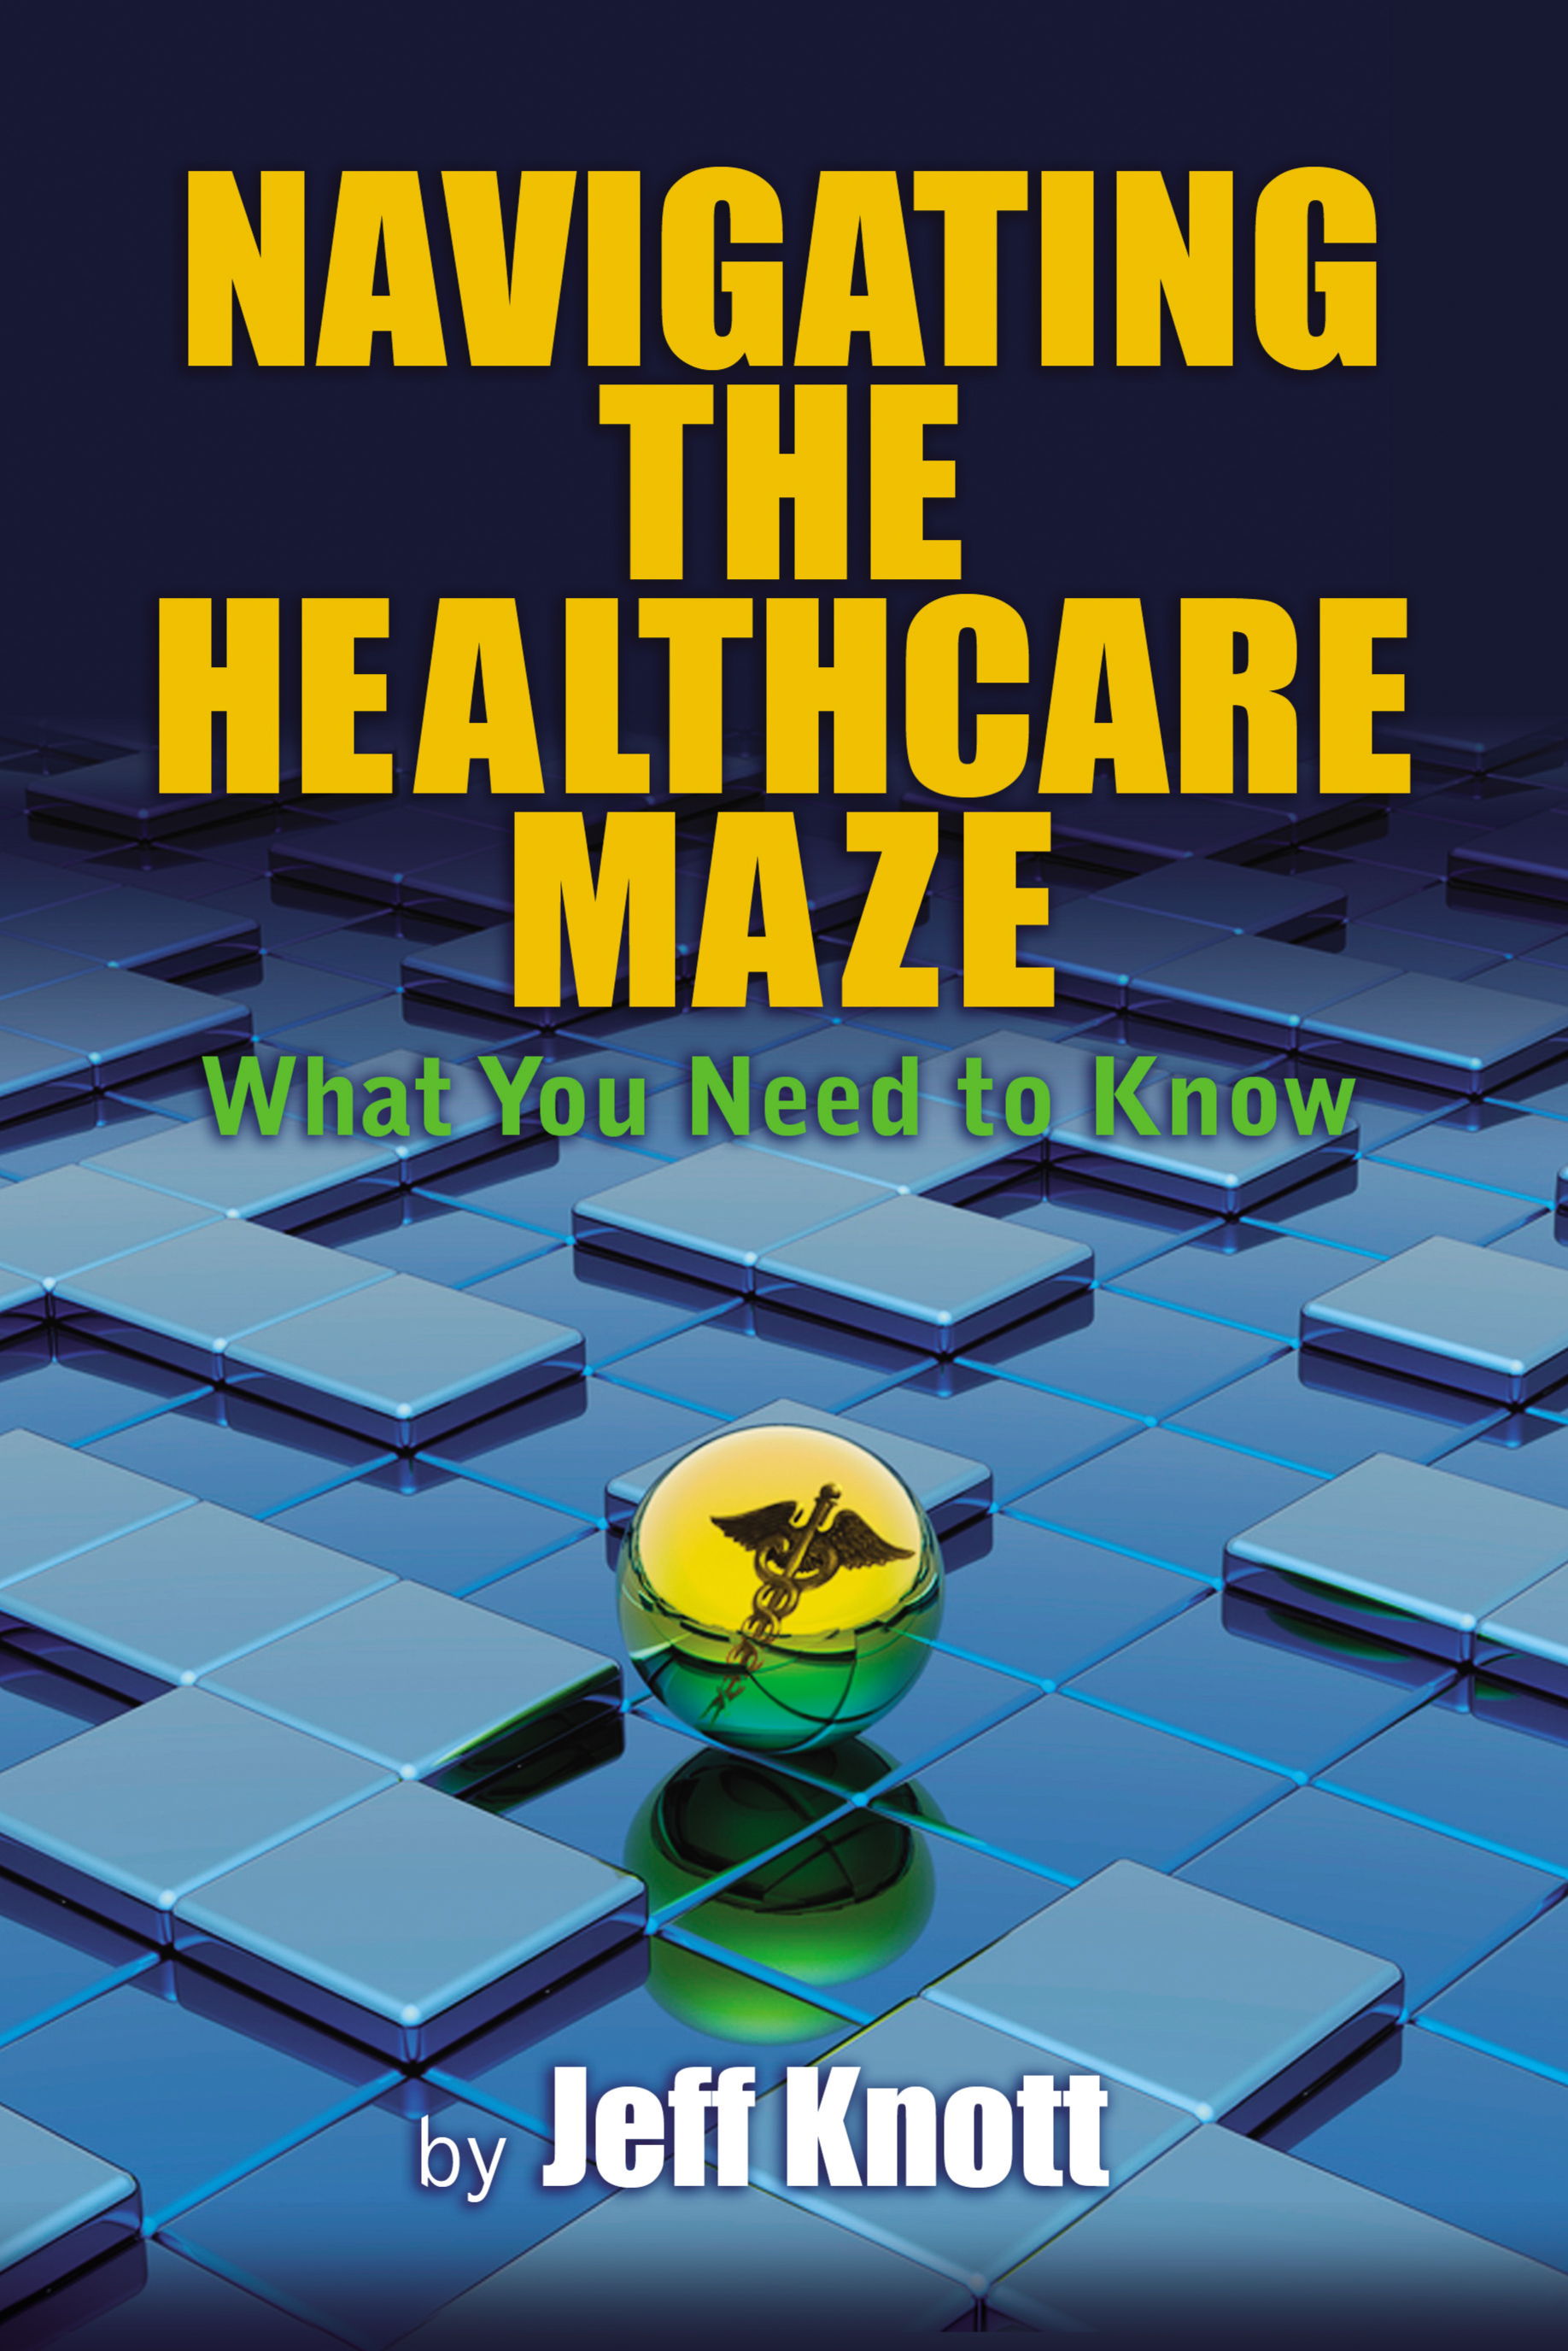 Navigating the Healthcare Maze